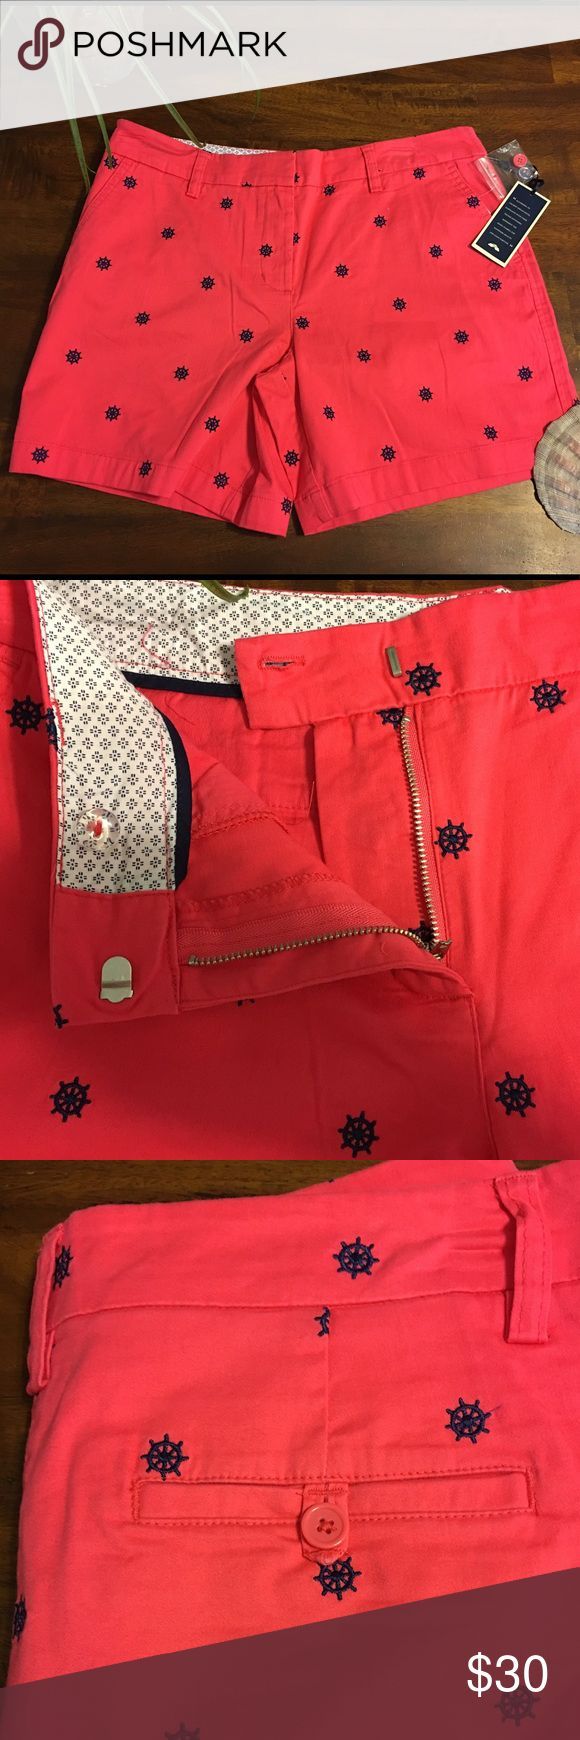 NEW Women's Nautical⚓️ shorts New with tags Nautical shorts. Blue embroidery on bright coral shorts. From a smoke free, pet free home British Khaki Shorts